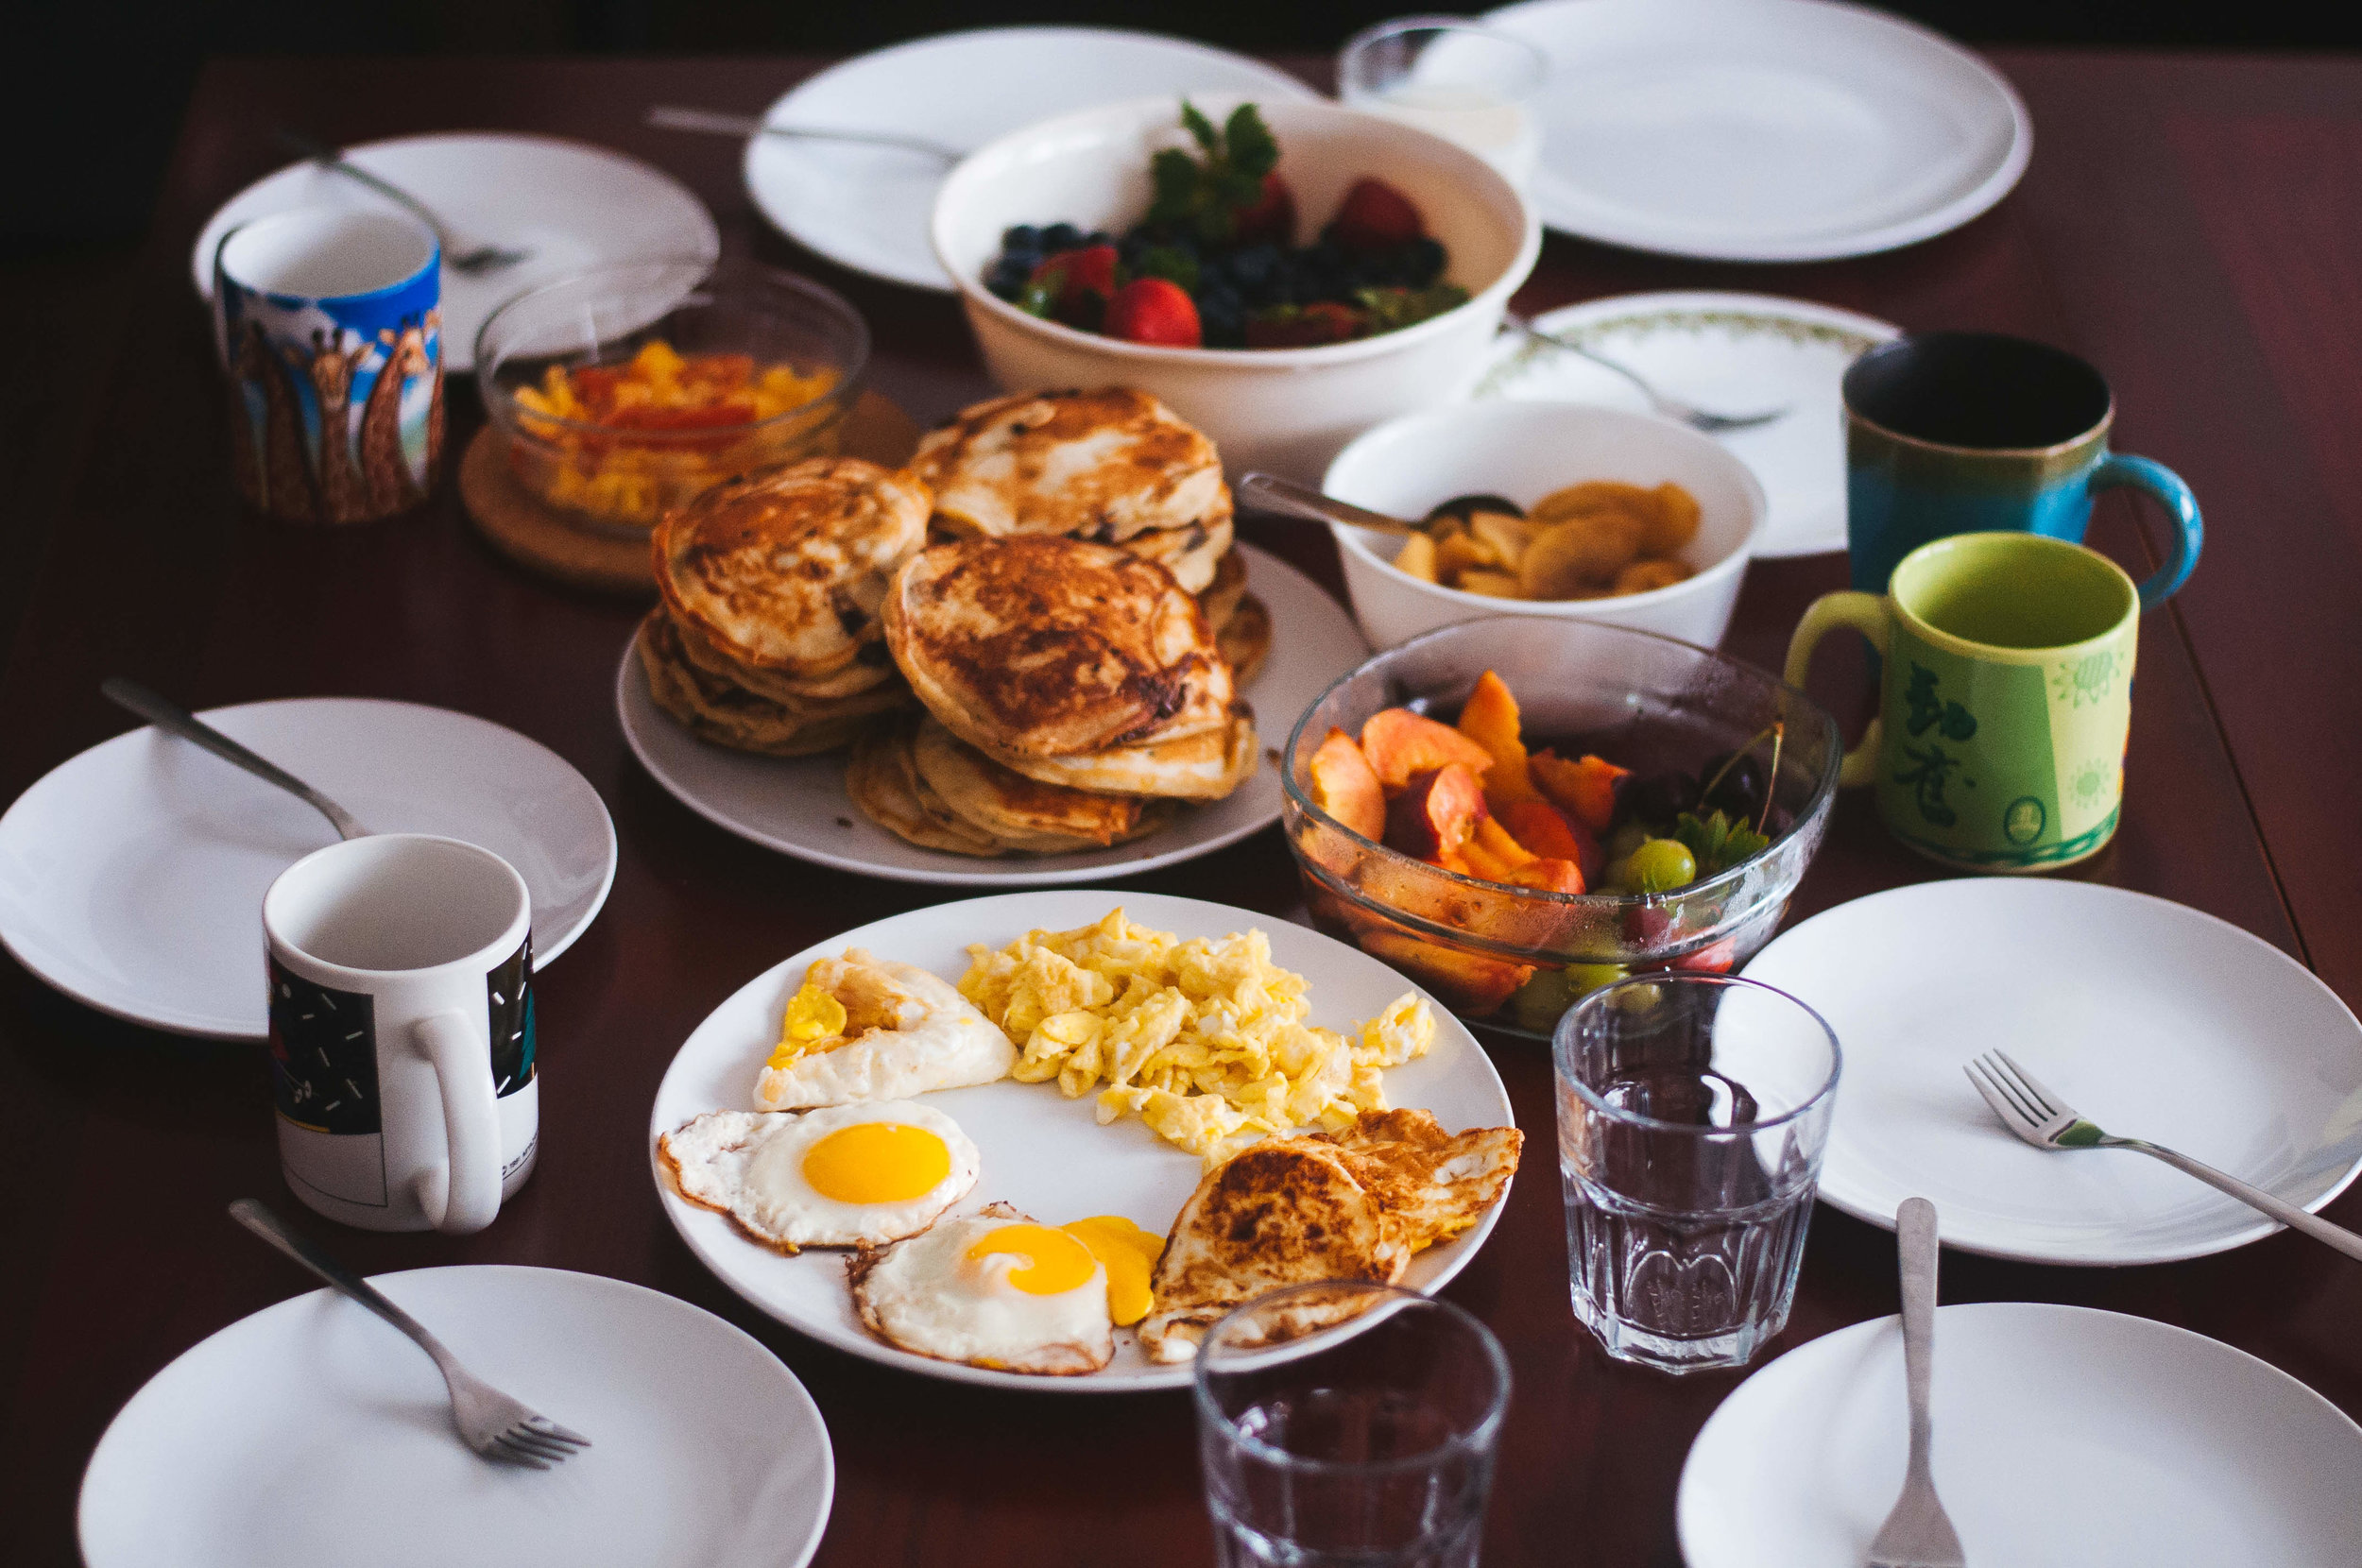 boss-fight-free-high-quality-stock-images-photos-photography-breakfast-eggs-pancakes.jpg